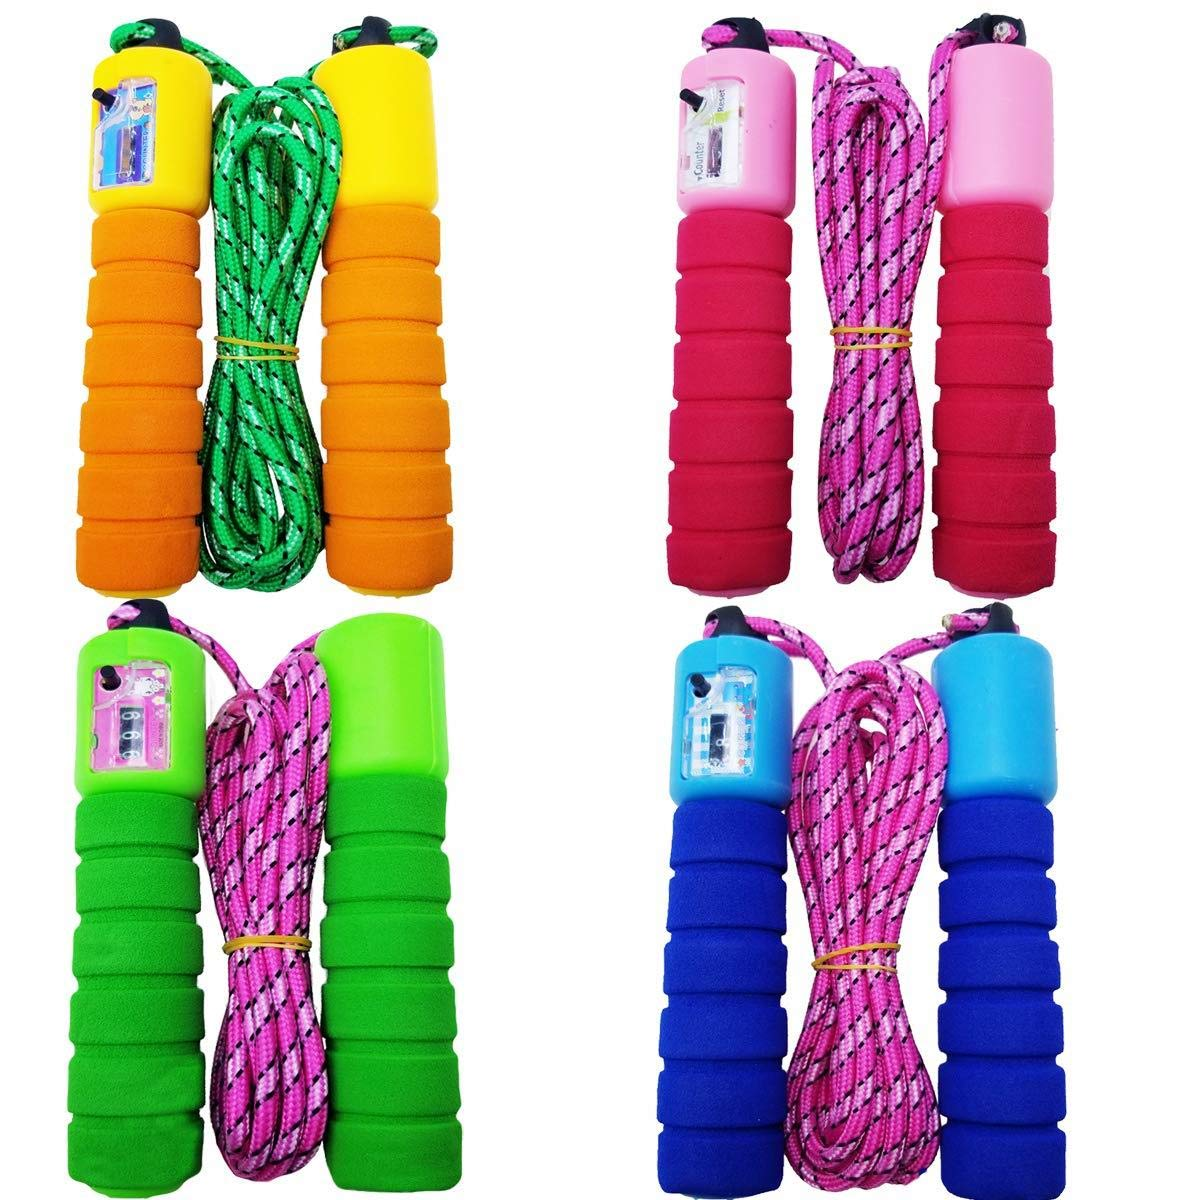 Professional Skipping Rope Auto Counting Jump Rope Anti-slip Sponge Handle